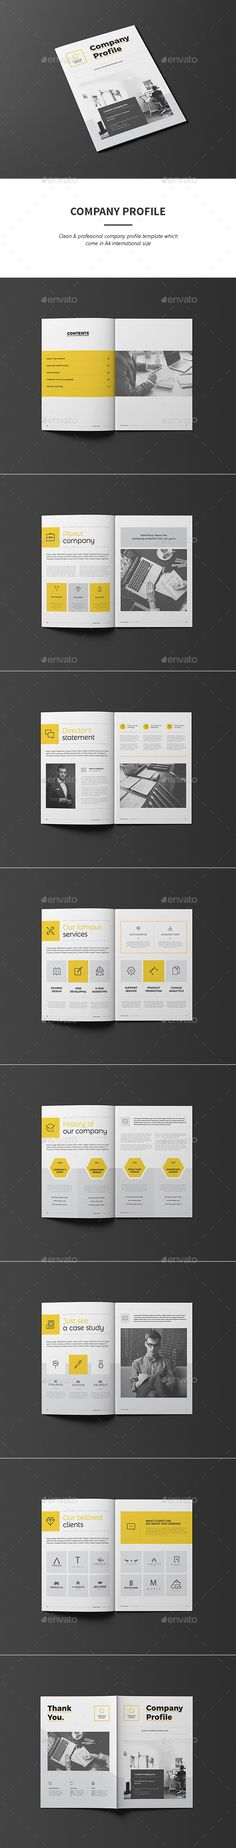 Download https\/\/elementsenvato\/items\/type\/graphic-templates - company profile sample download